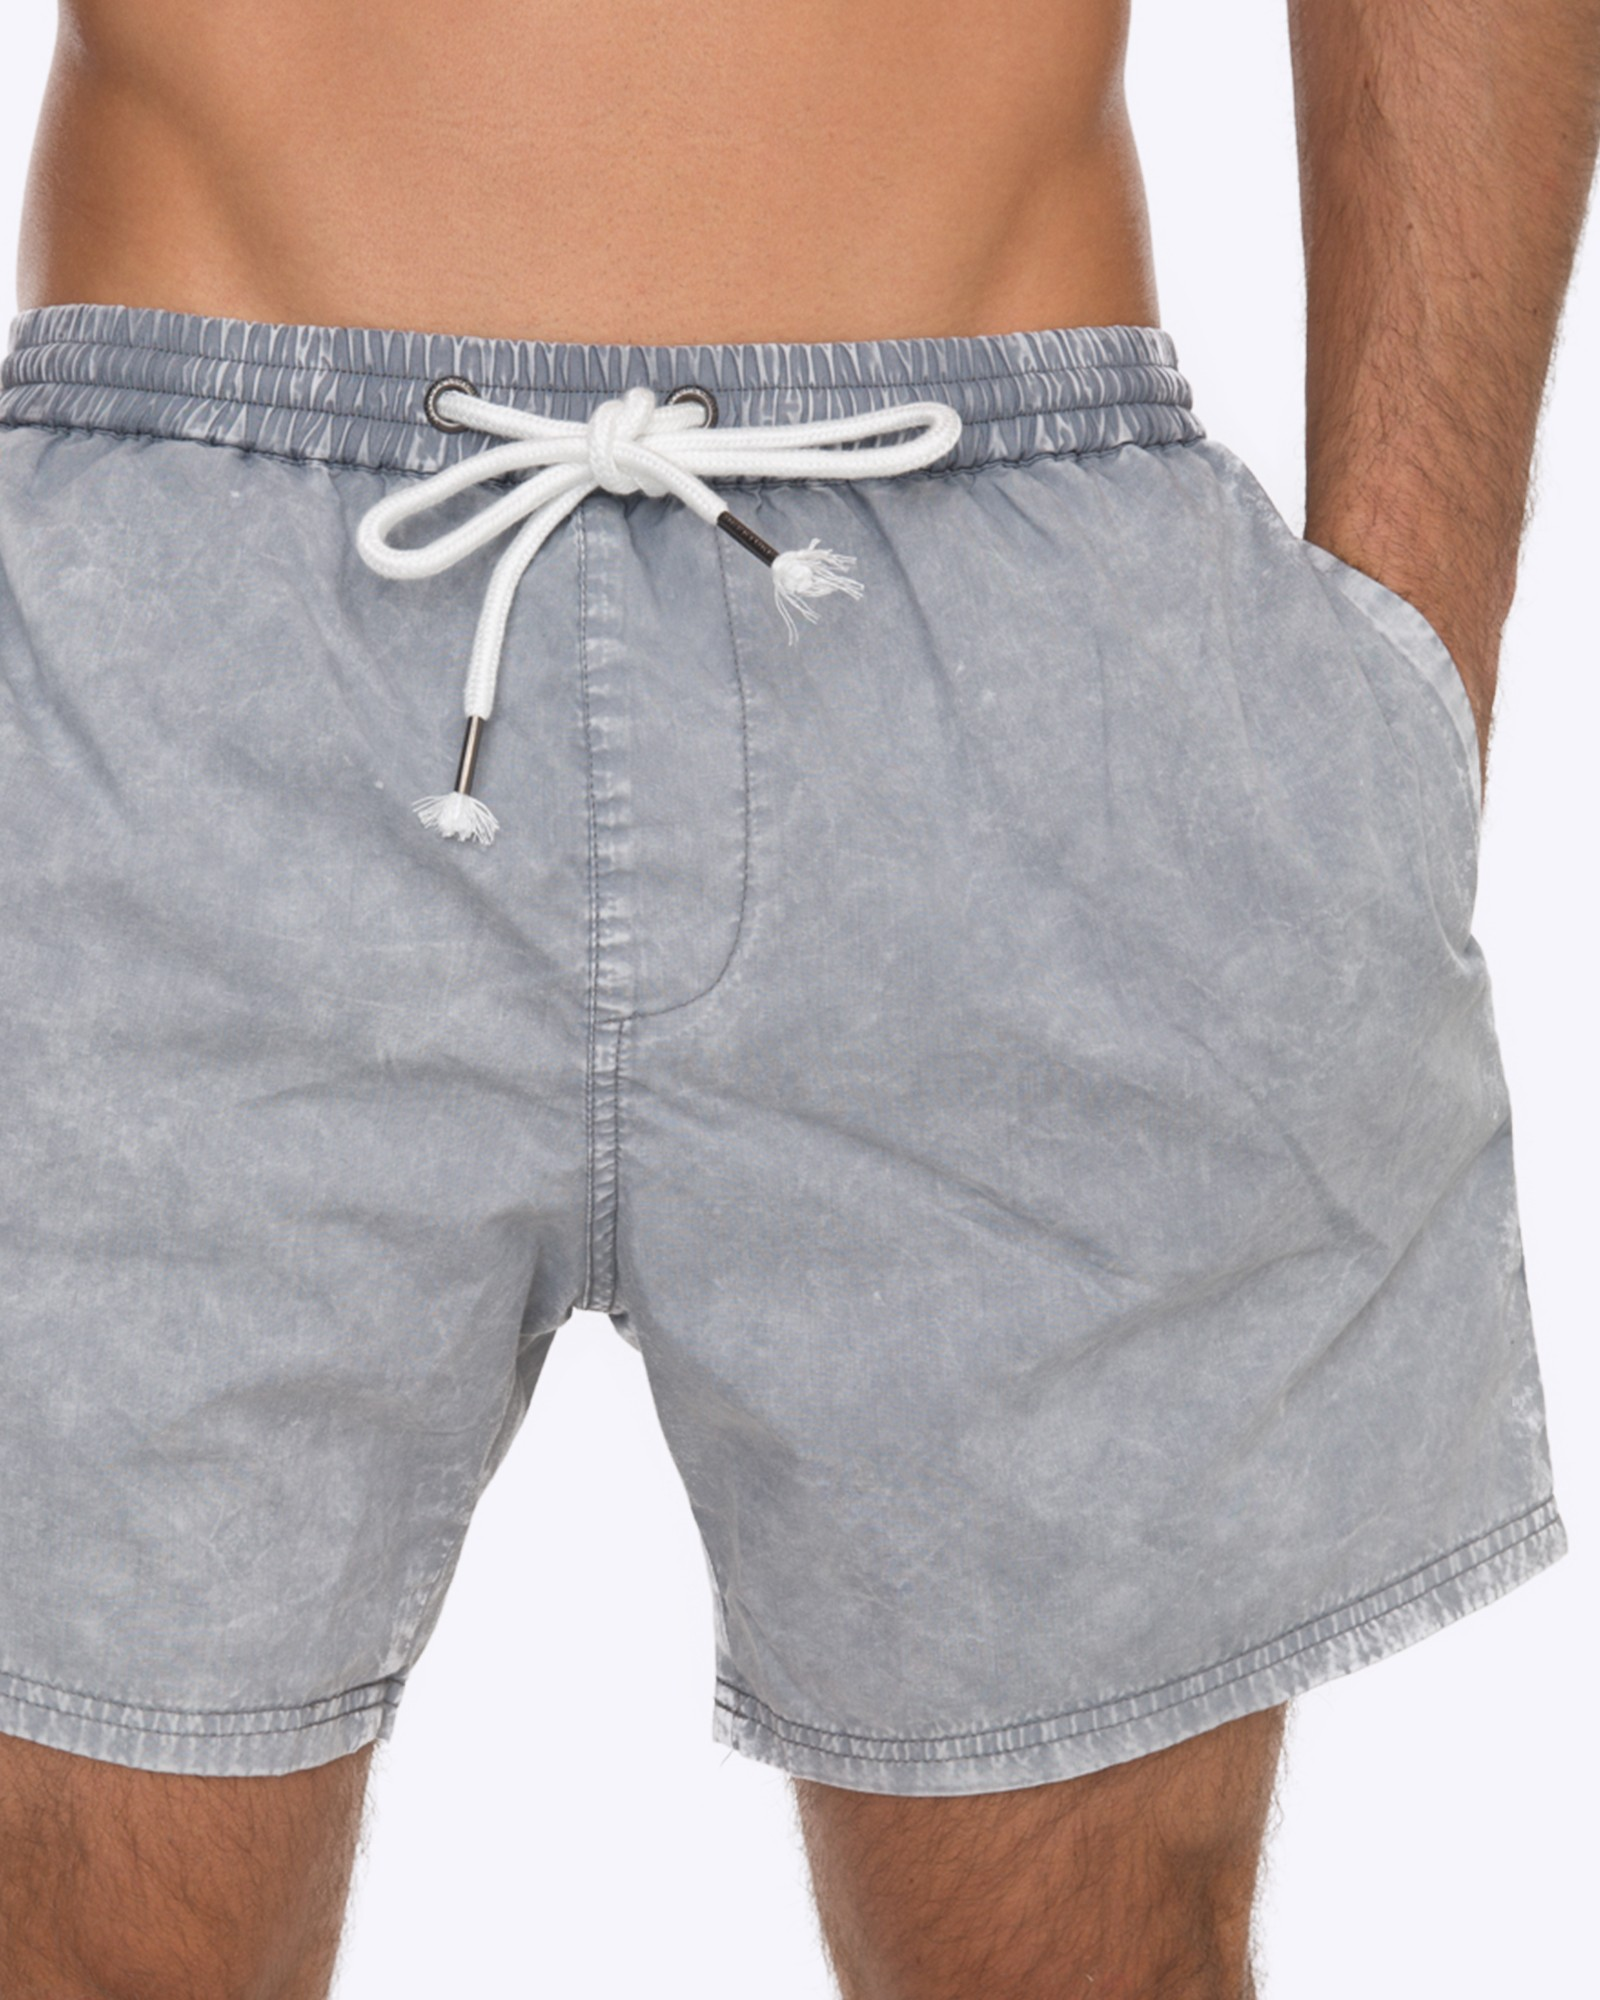 DRY ICE ACID GREY WALK SHORTS